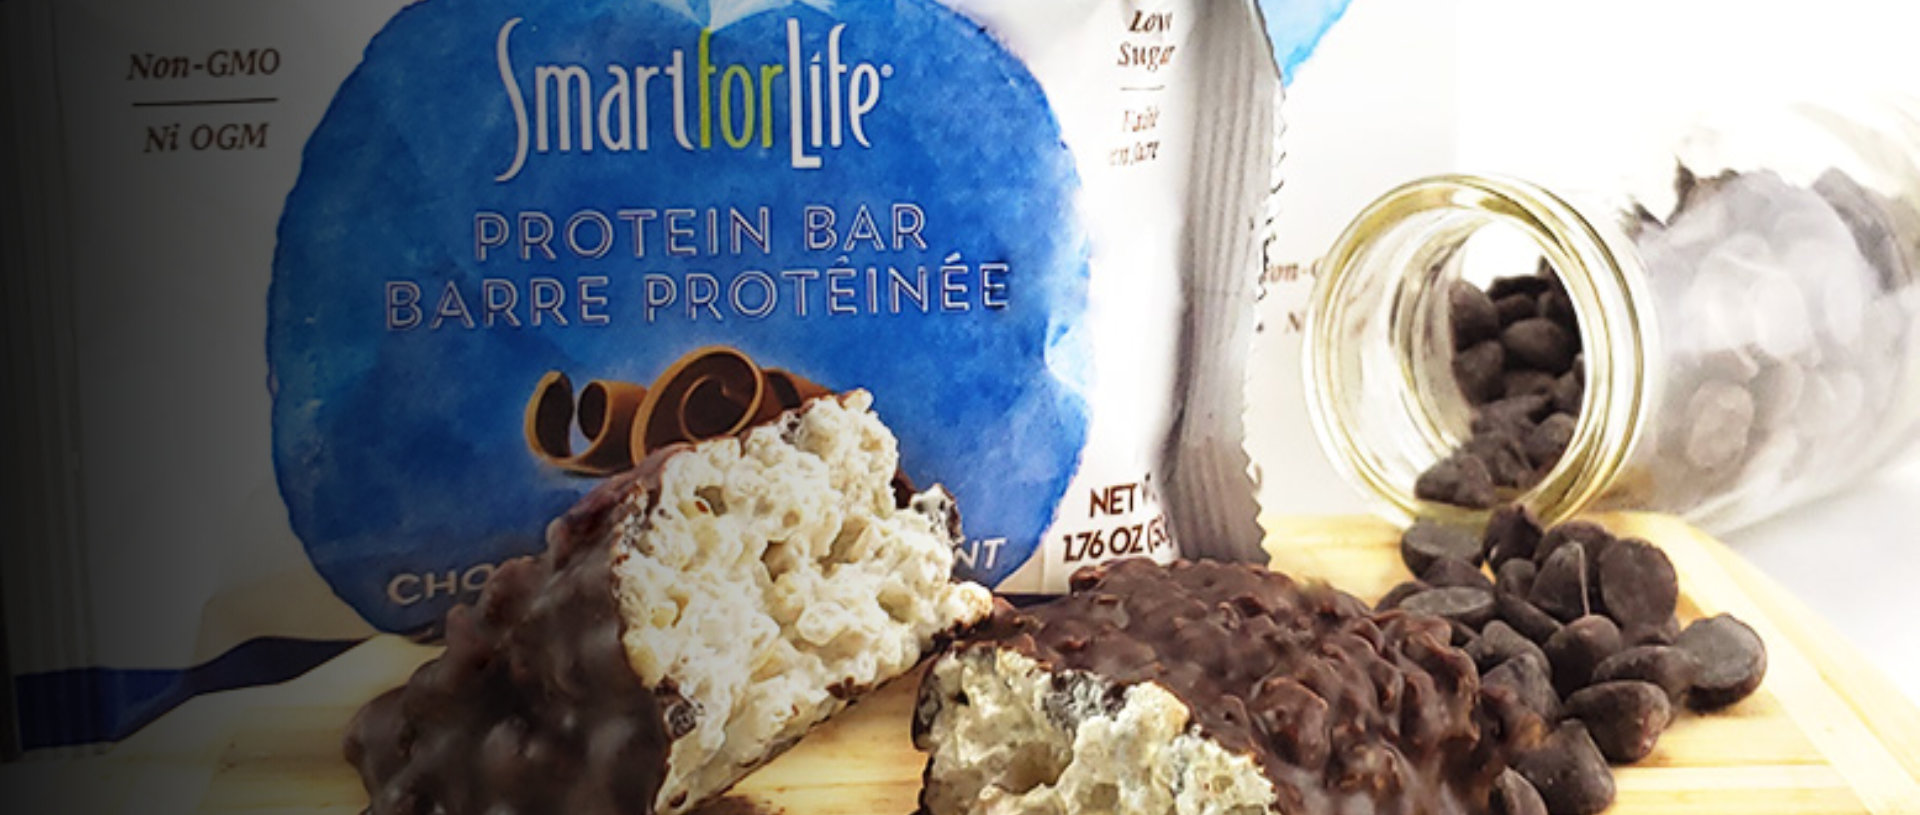 smart for life chocolate flavor